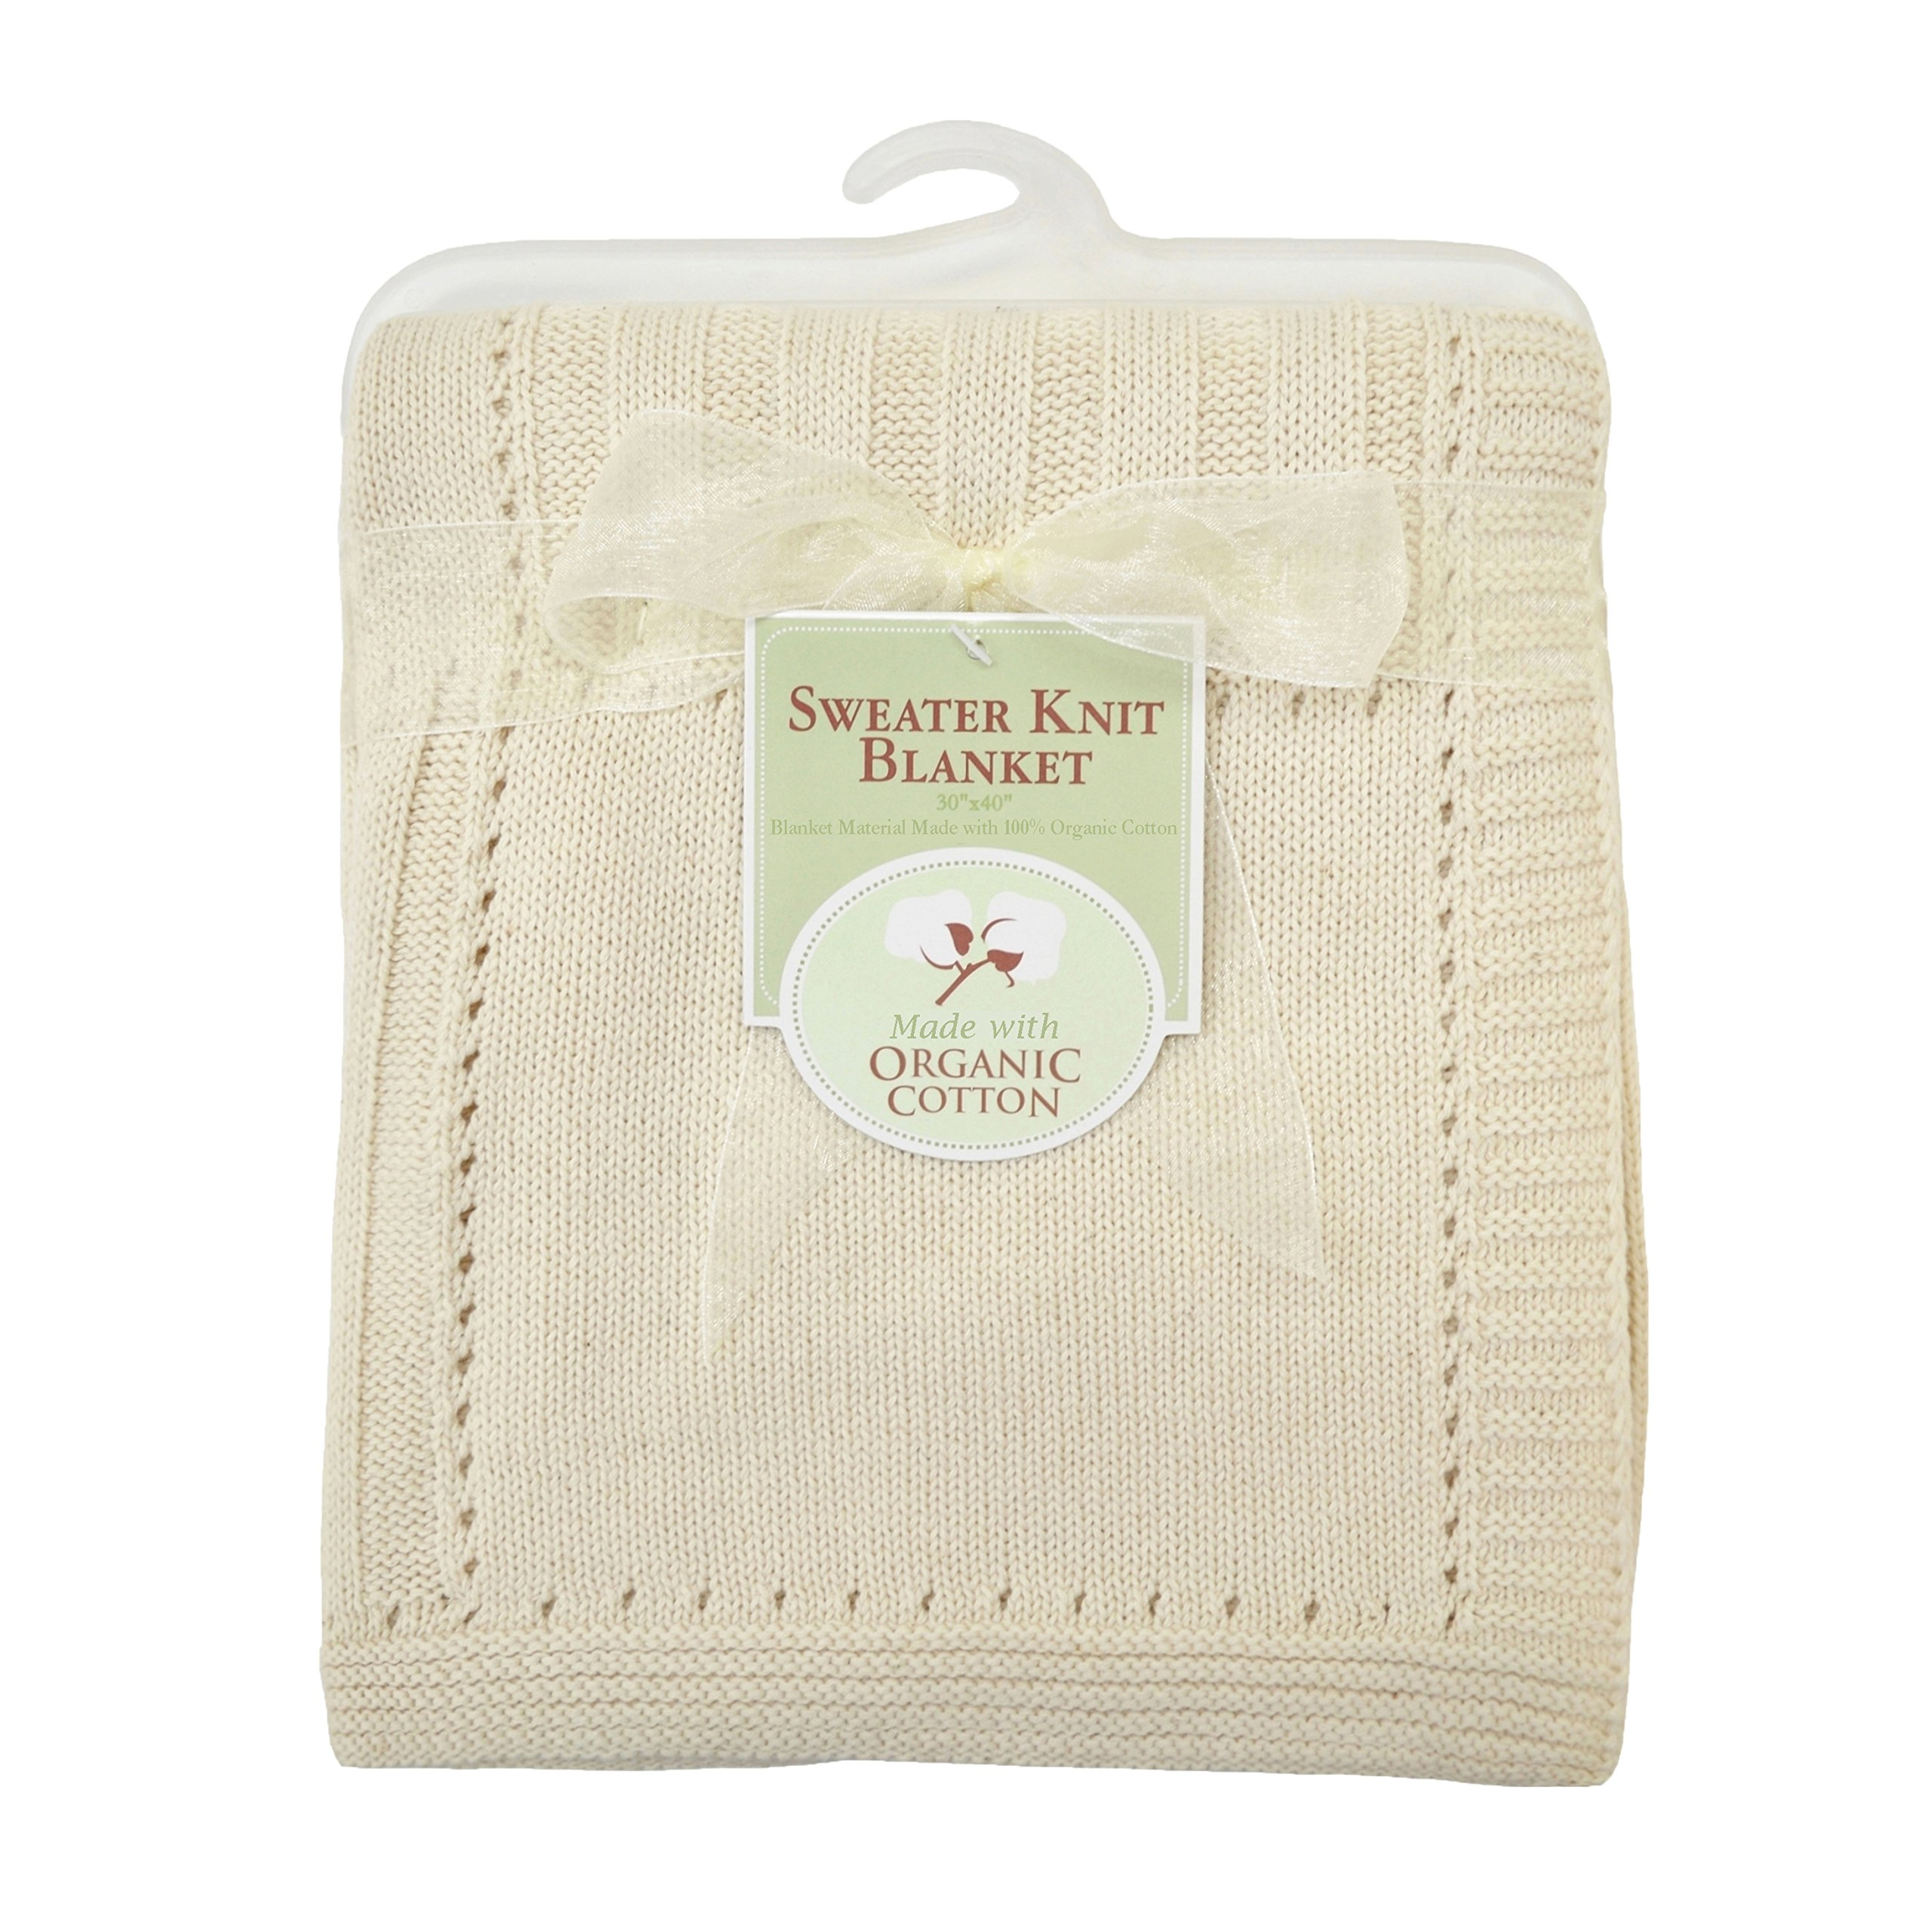 American Baby Company 83309 Organic Cotton Sweater Knit Blanket (Natural) product image